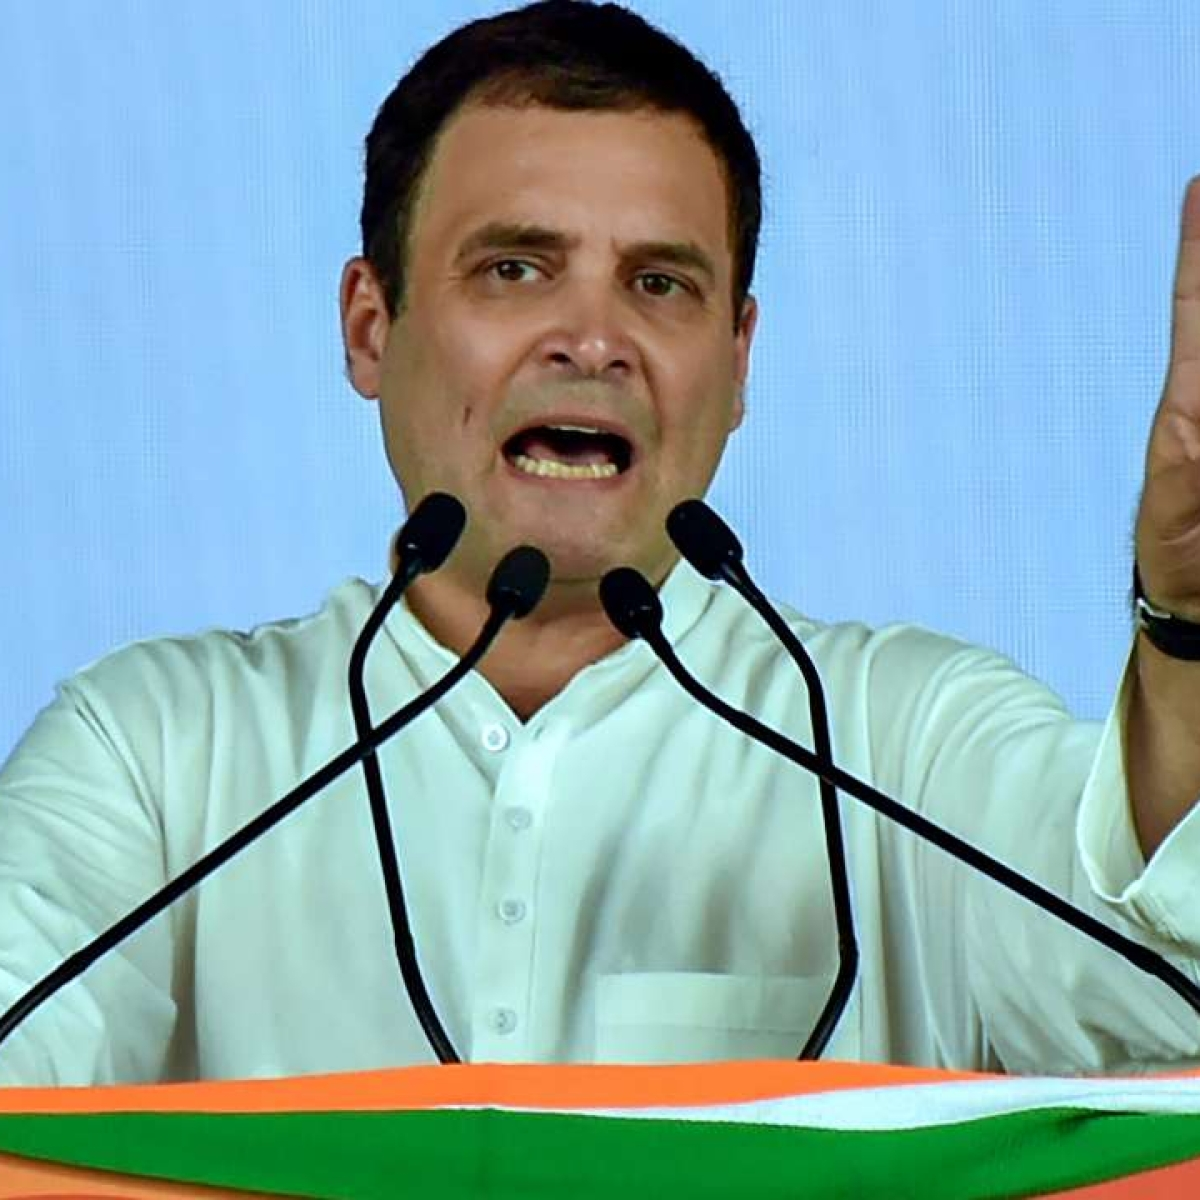 Can't fight COVID-19 with meaningless talks once a month: Rahul Gandhi mocks PM Modi's 'Mann Ki Baat'